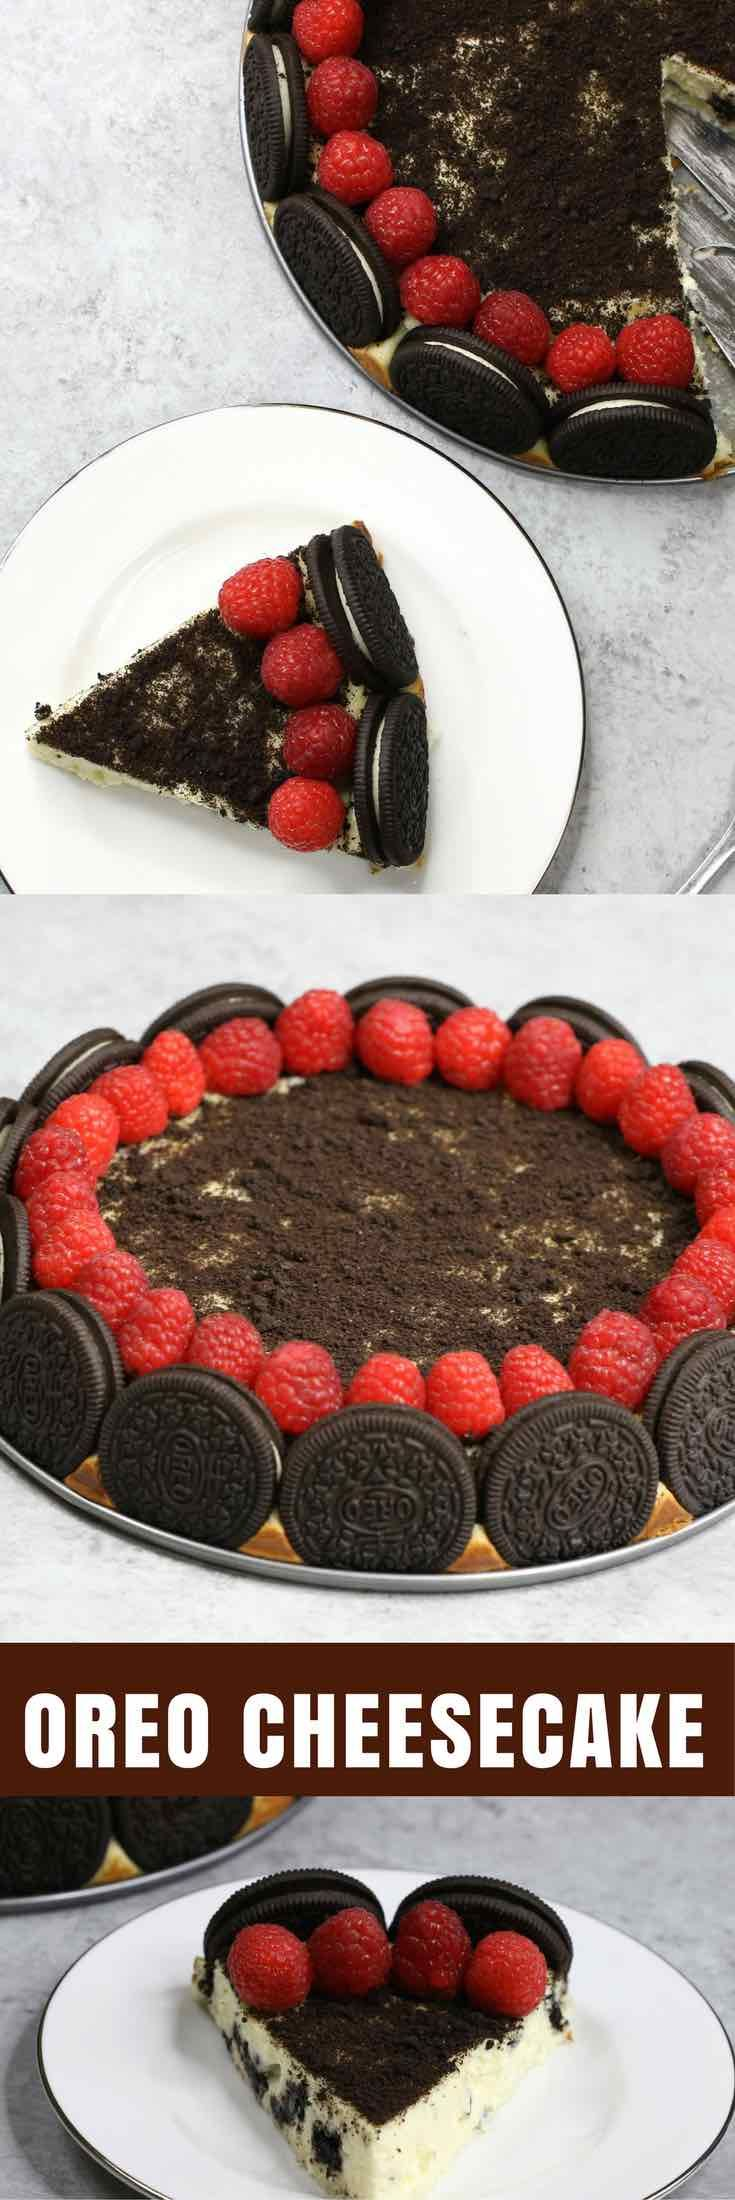 The Best Oreo Cheesecake – the easiest and most beautiful cake topped with cookies and cream crumbs and fresh raspberries. All you need is a few simple ingredients: oreo cookies, cream cheese, sugar, vanilla, eggs, sour cream and raspberries. Great for dessert, brunch, birthday parties or Mother's Day. Video recipe.   tipbuzz.com